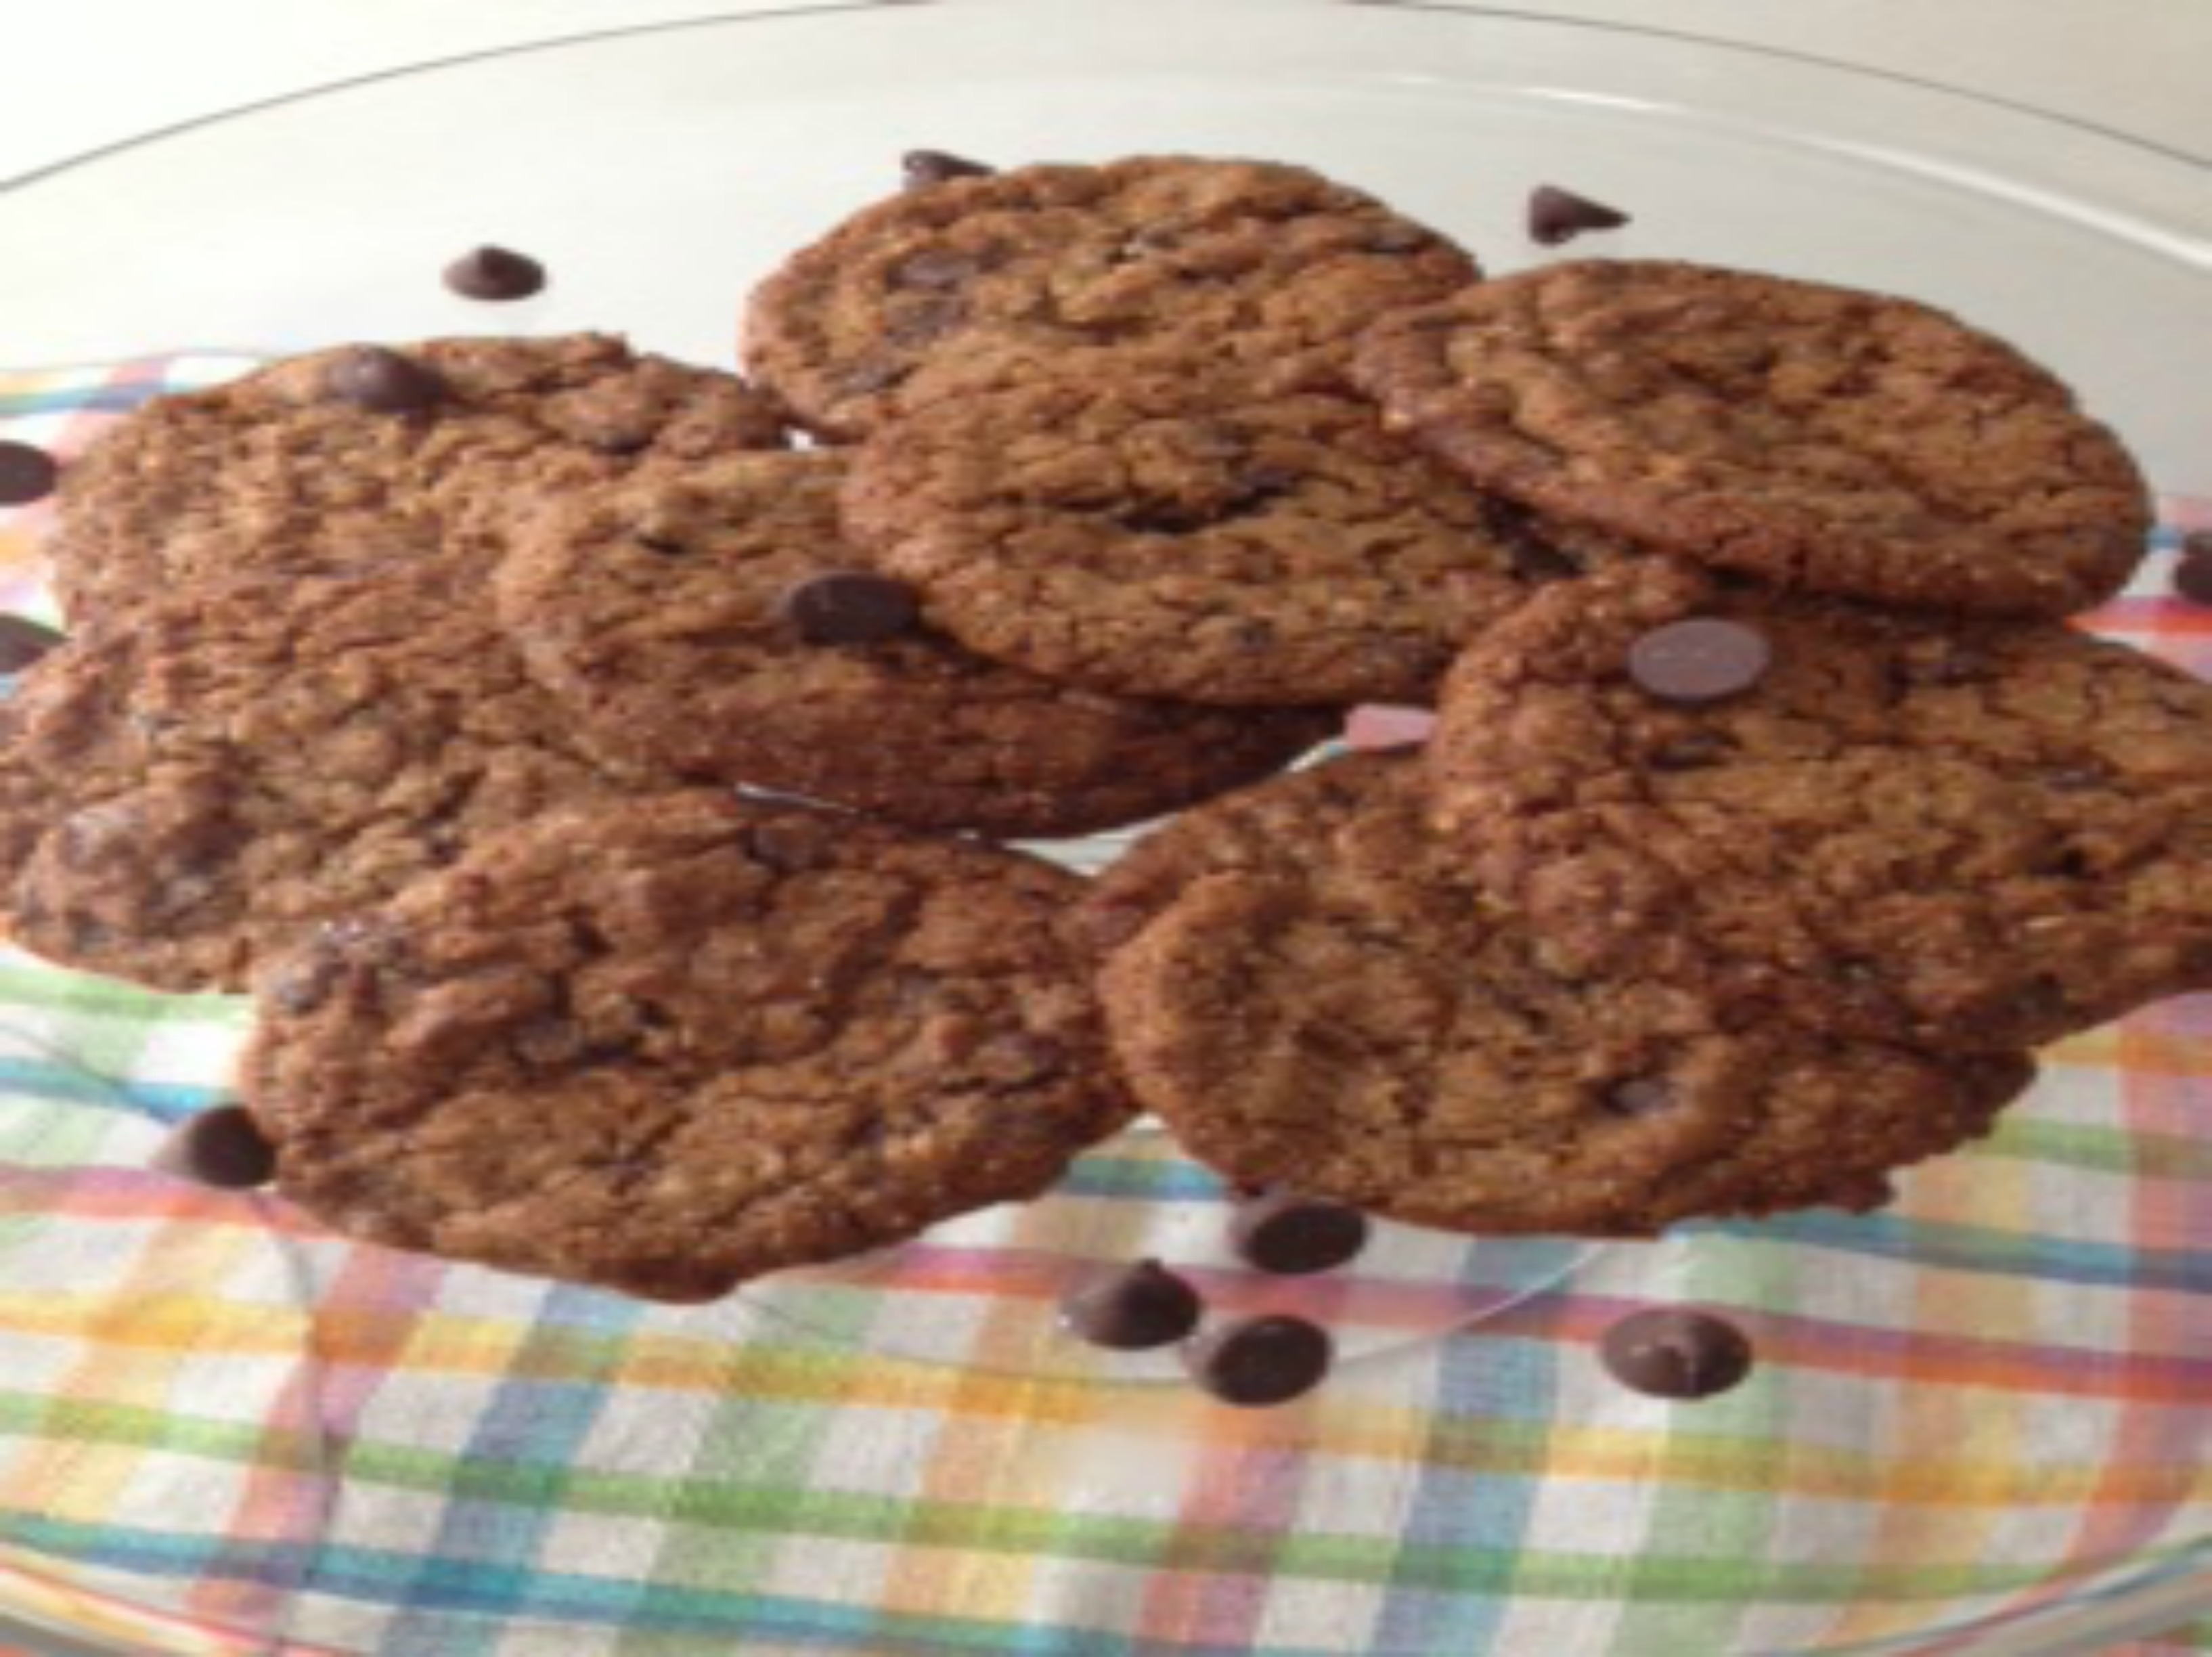 Inspiring Kitchen Paleoful cookies